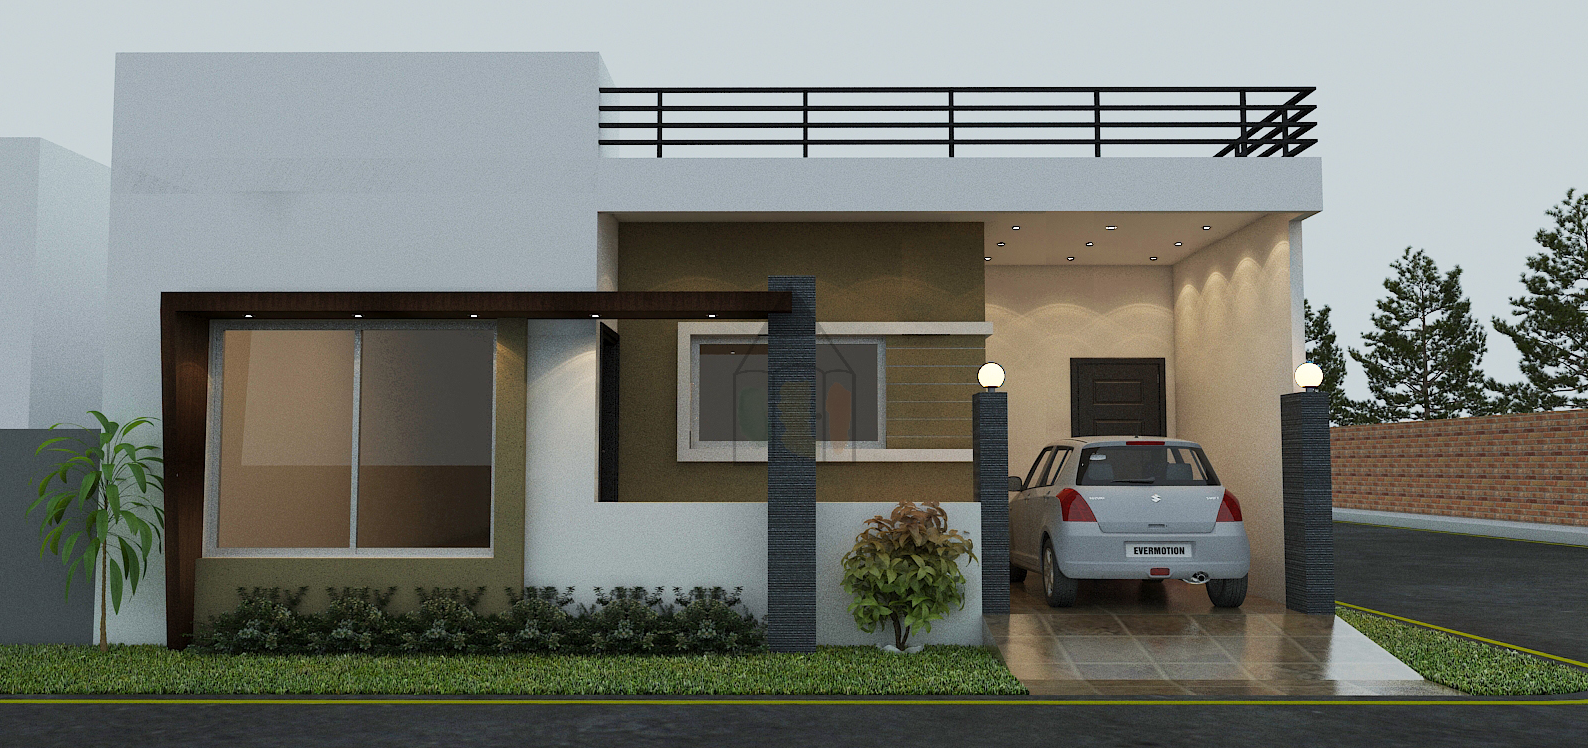 Single Storey House Design Where The Home Has Two Bedrooms And A Common Bathroom It Has A D Single Floor House Design House Front Design Modern House Exterior